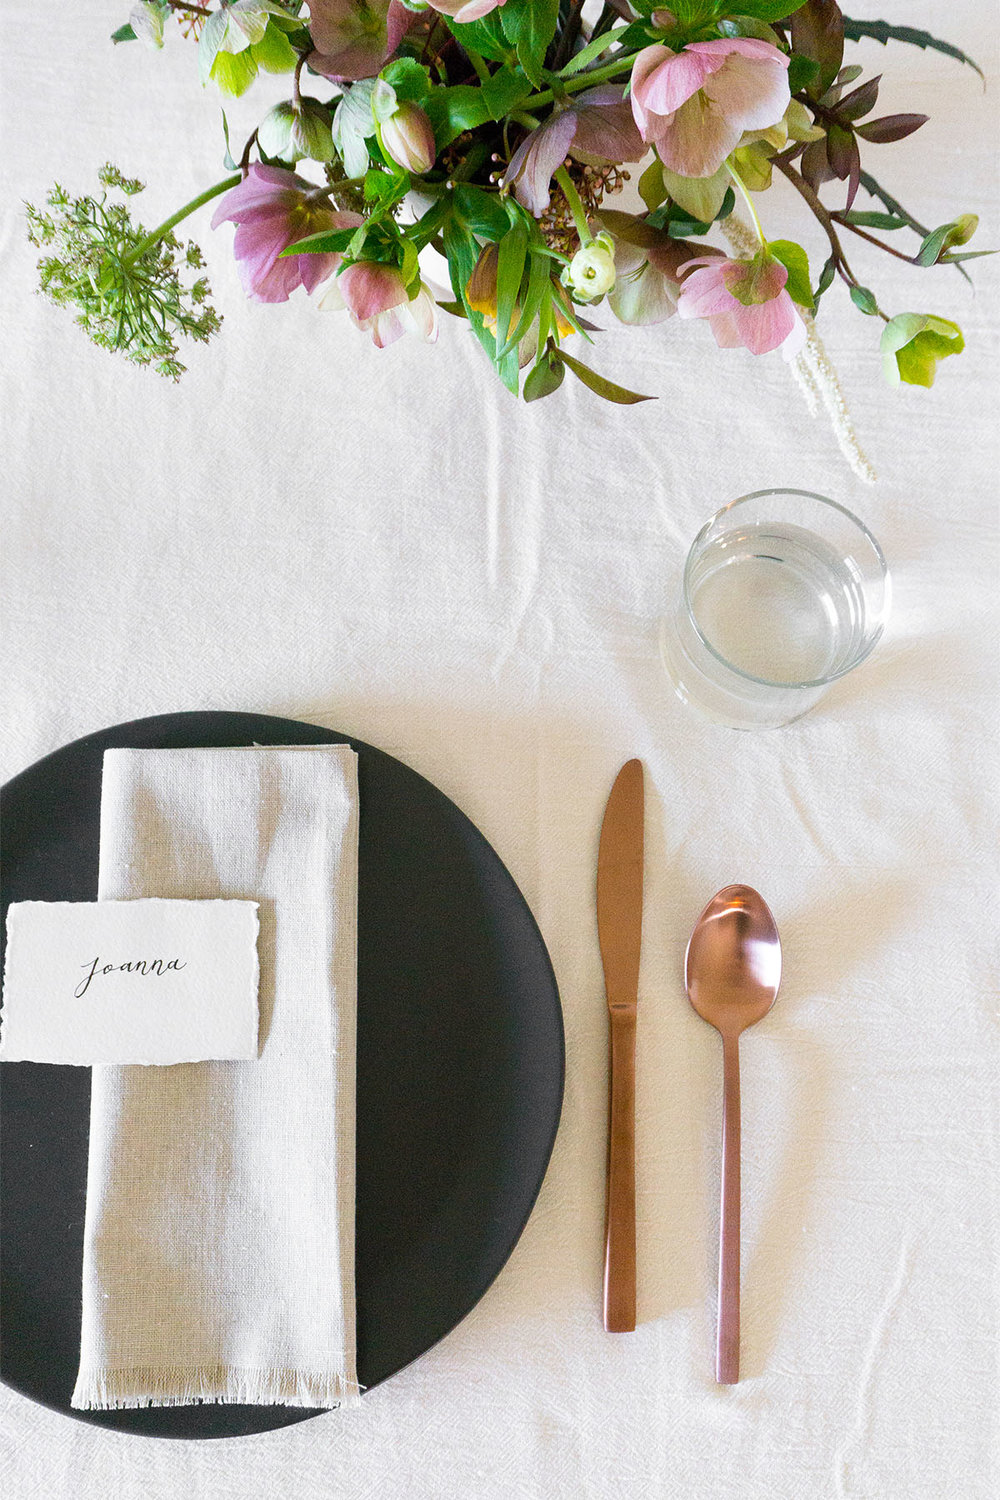 Spring Bloom Wedding in Palo Alto